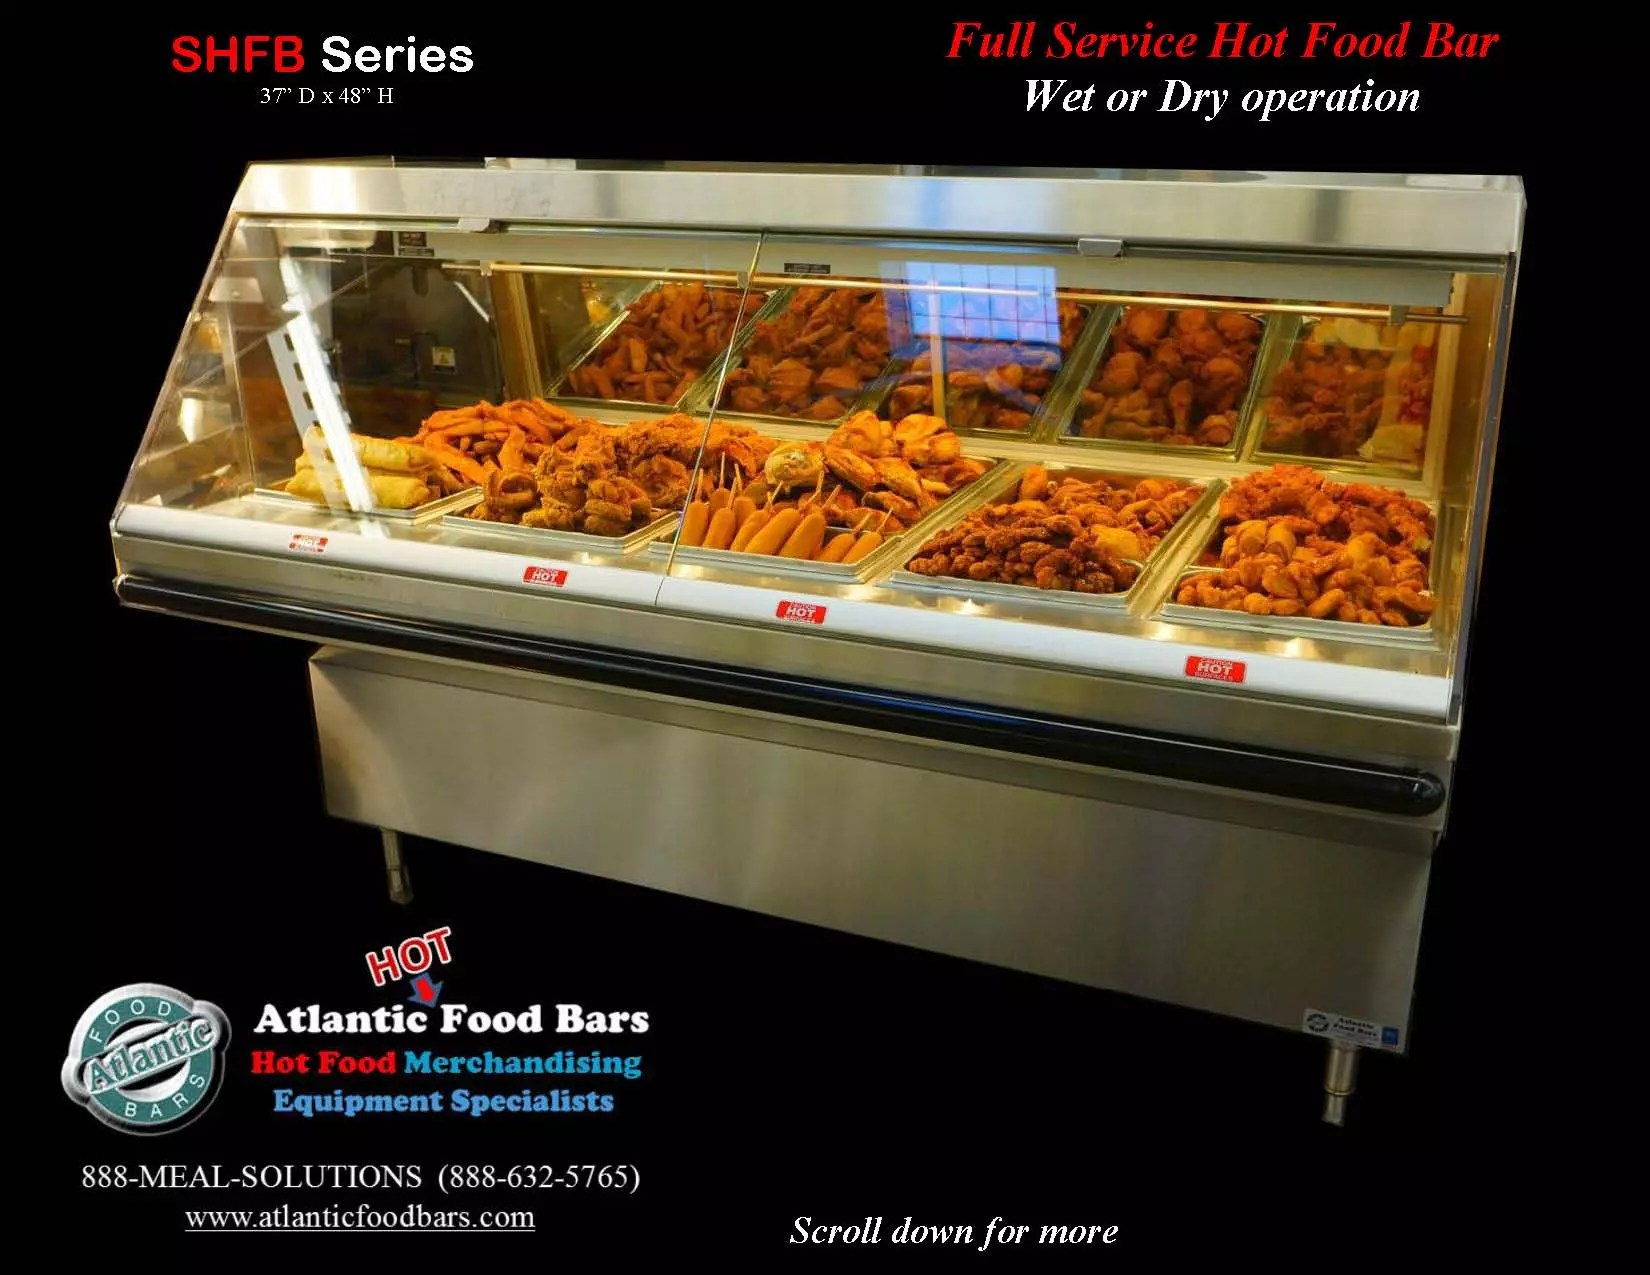 atlantic food bars wet dry full service hot food bar